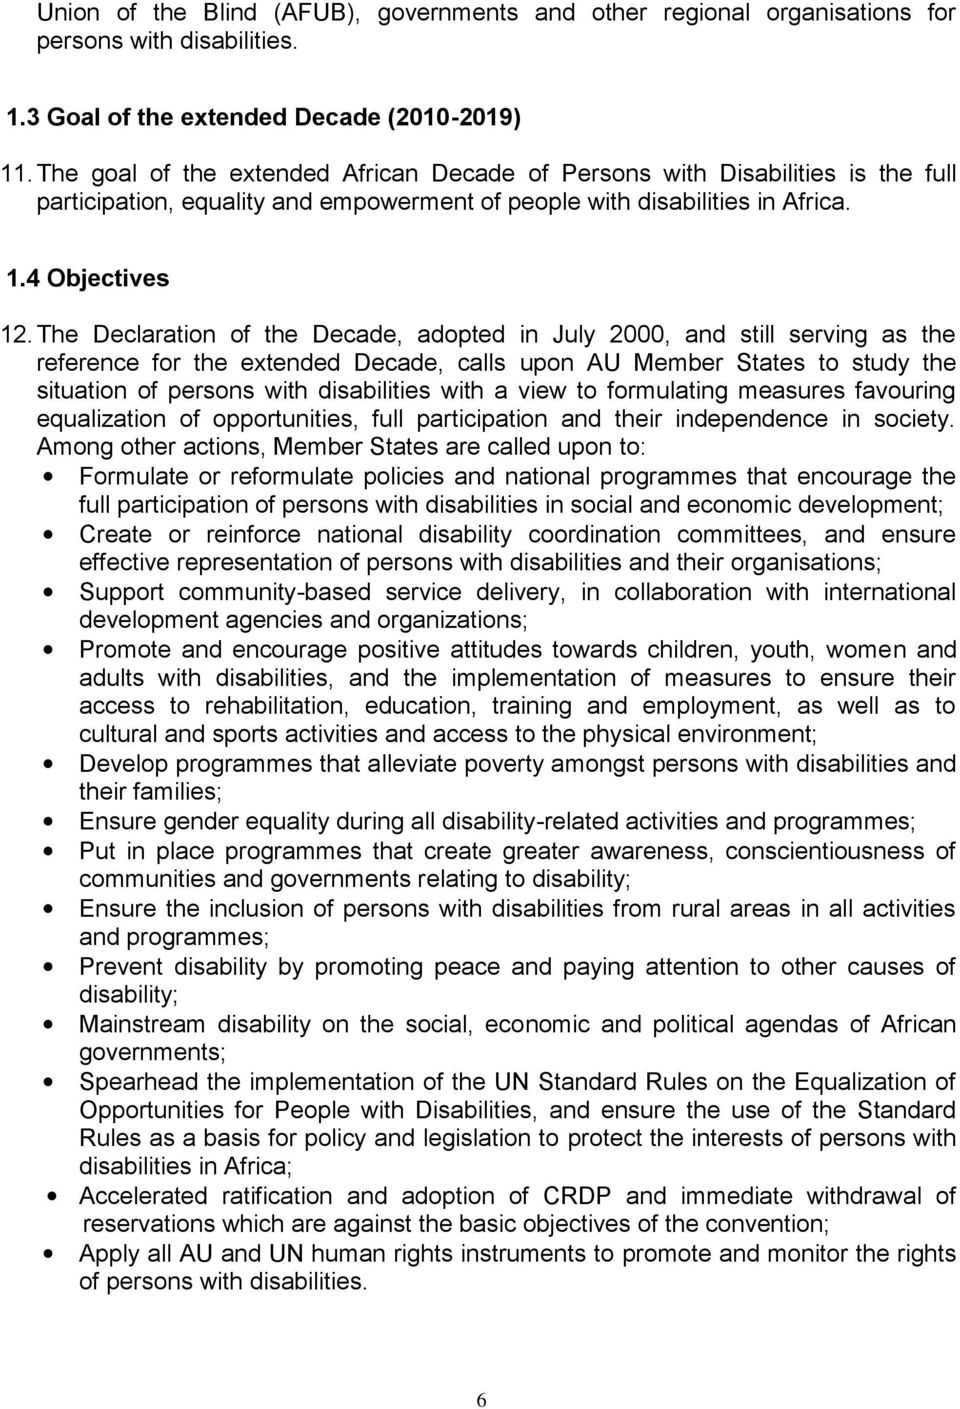 The Declaration of the Decade, adopted in July 2000, and still serving as the reference for the extended Decade, calls upon AU Member States to study the situation of persons with disabilities with a